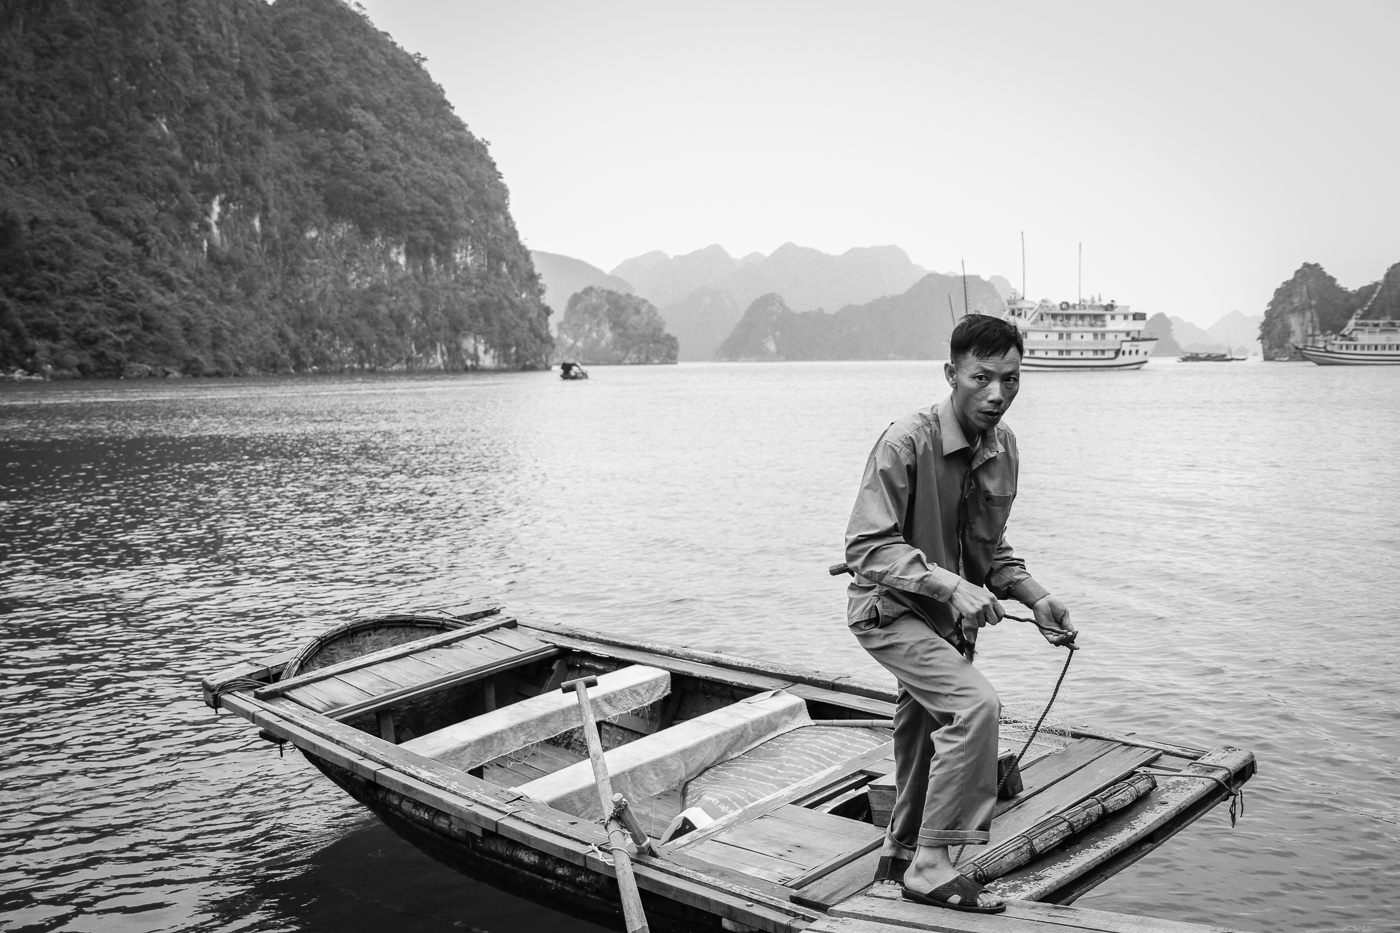 man on boat black and white.jpg